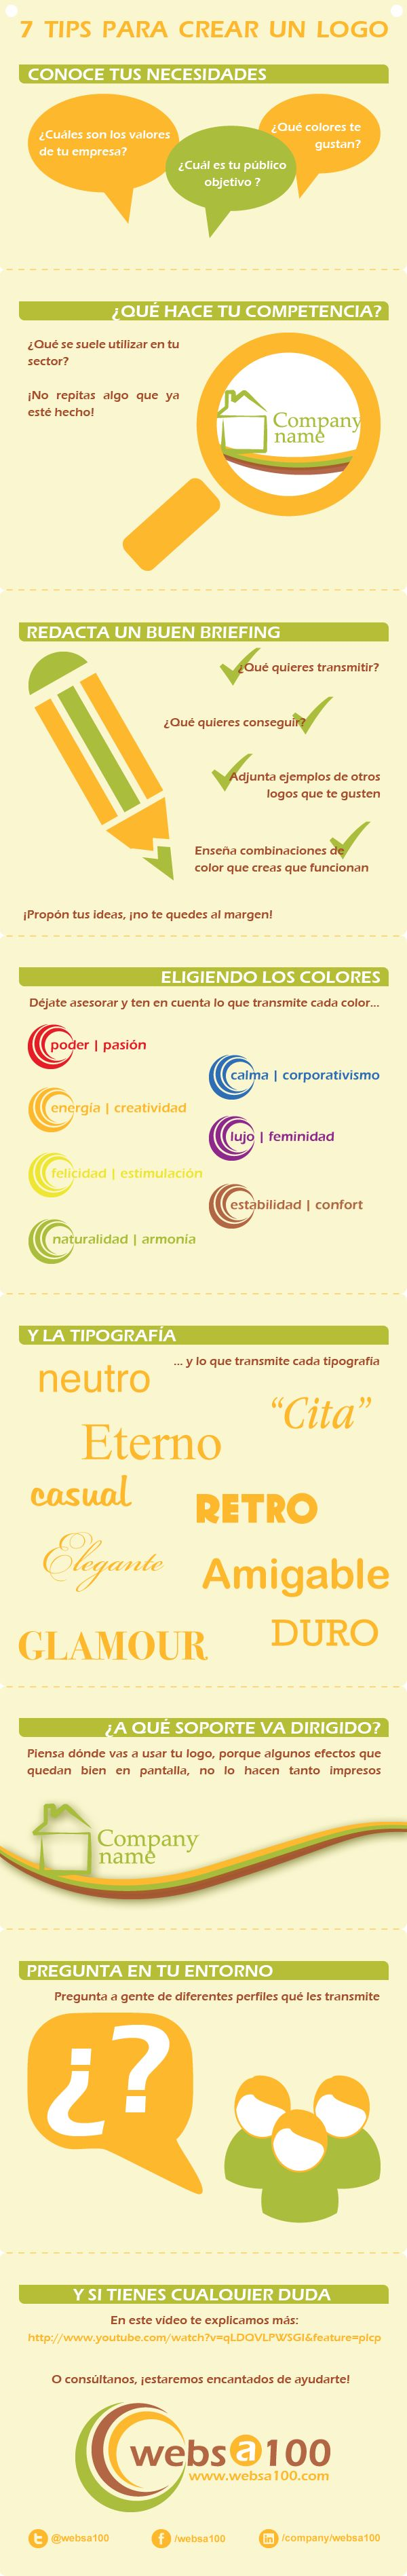 7 consejos para crear un logo #infografia #infographic #marketing #design